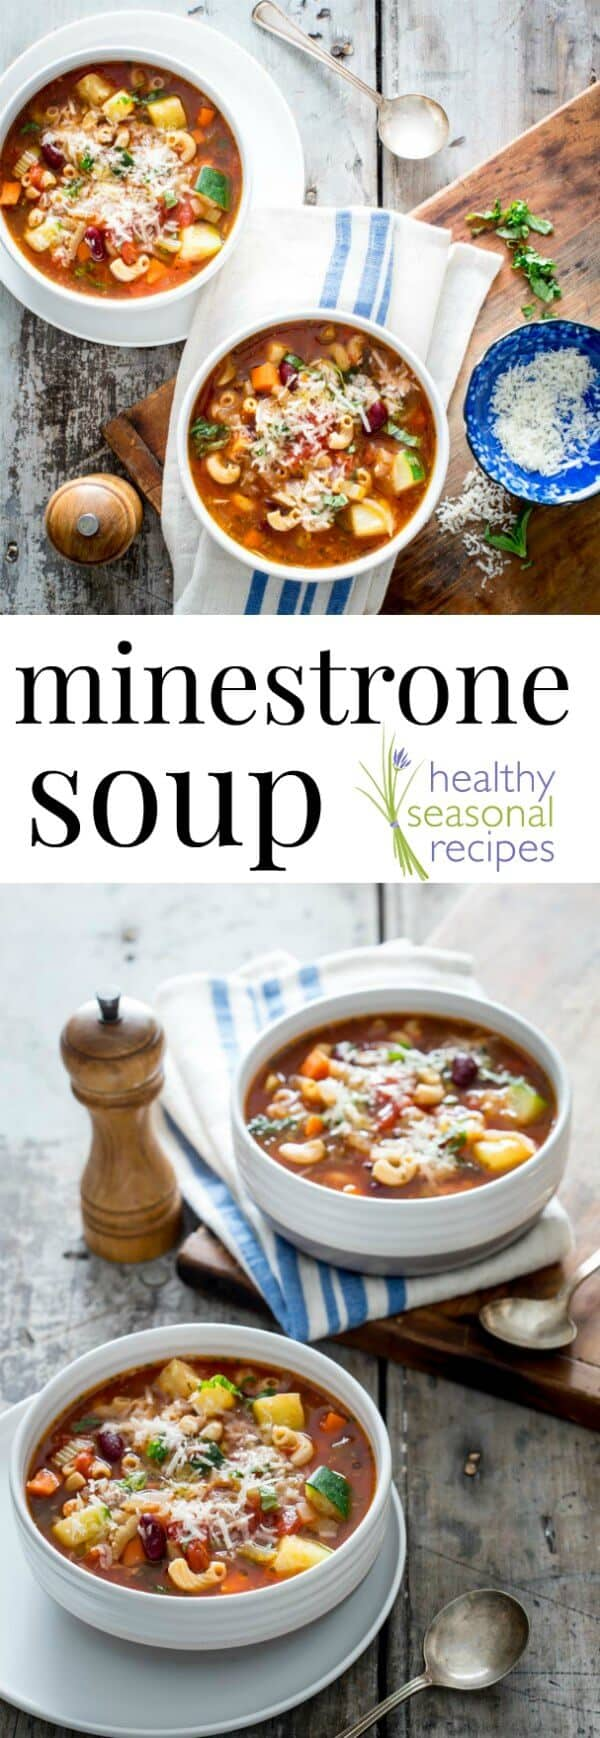 A fast and healthy Minestrone Soup recipe with zucchini and fresh basil. Vegan or gluten-free options if desired. High in fiber and only 111 calories per cup, it is surprisingly filling! Can be frozen too. @healthyseasonal #soup #minestrone #vegan #glutenfree #healthy